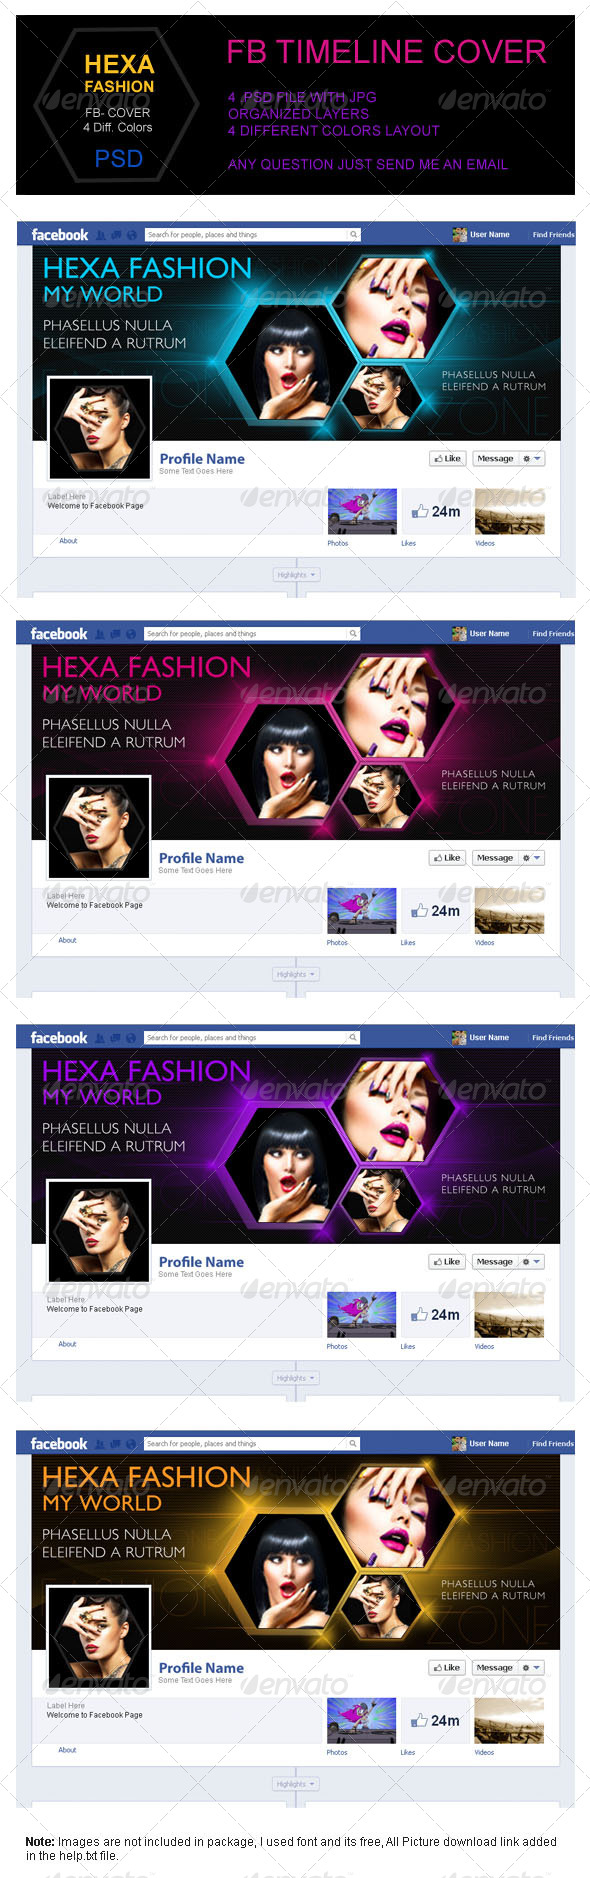 GraphicRiver Hexa Fashion FB Timeline Cover 4176539